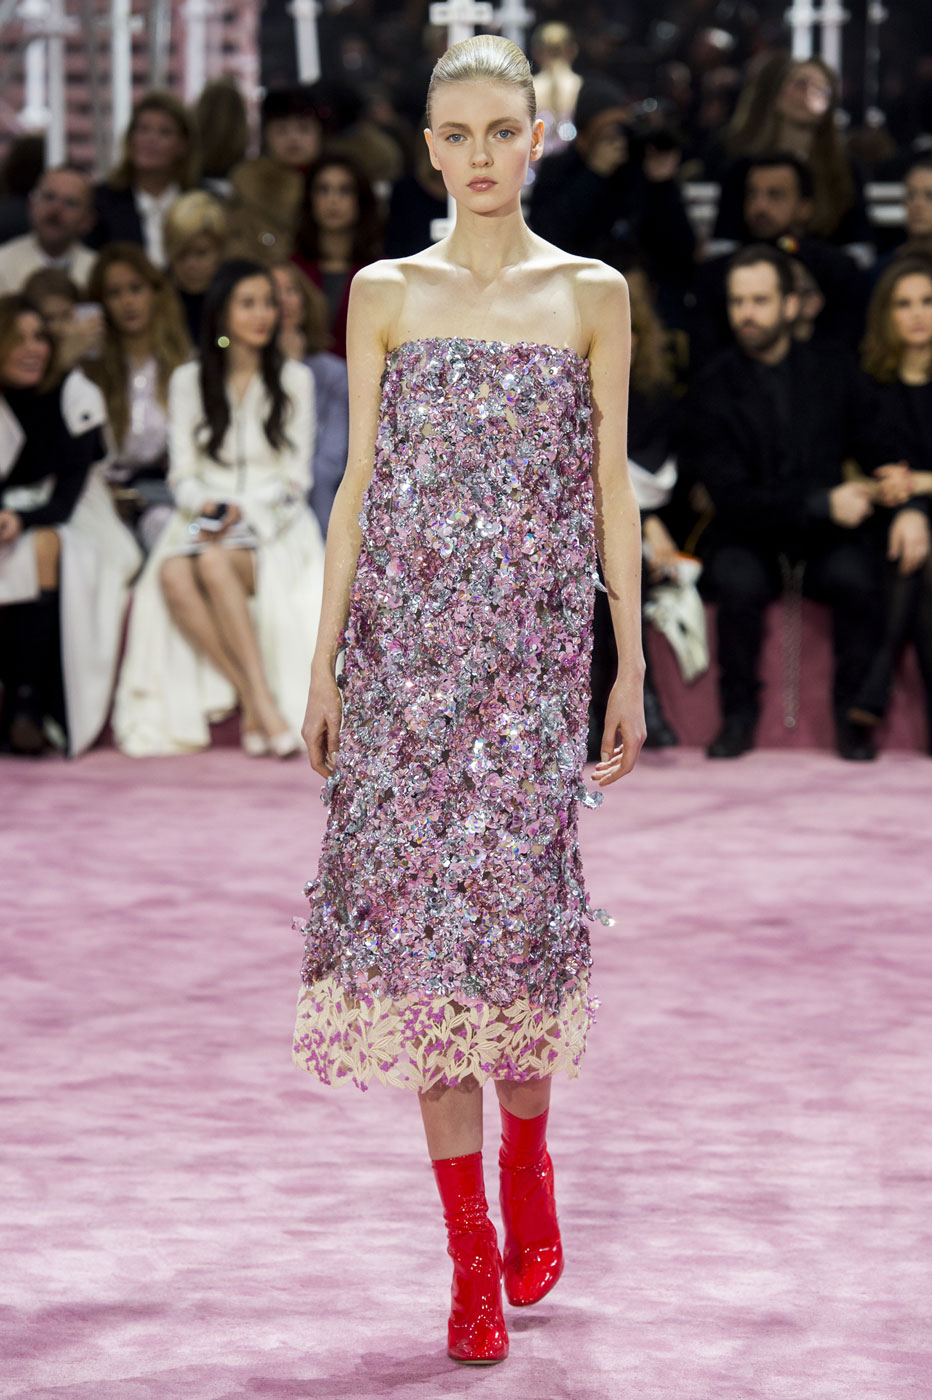 Christian-Dior-fashion-runway-show-haute-couture-paris-spring-summer-2015-the-impression-082